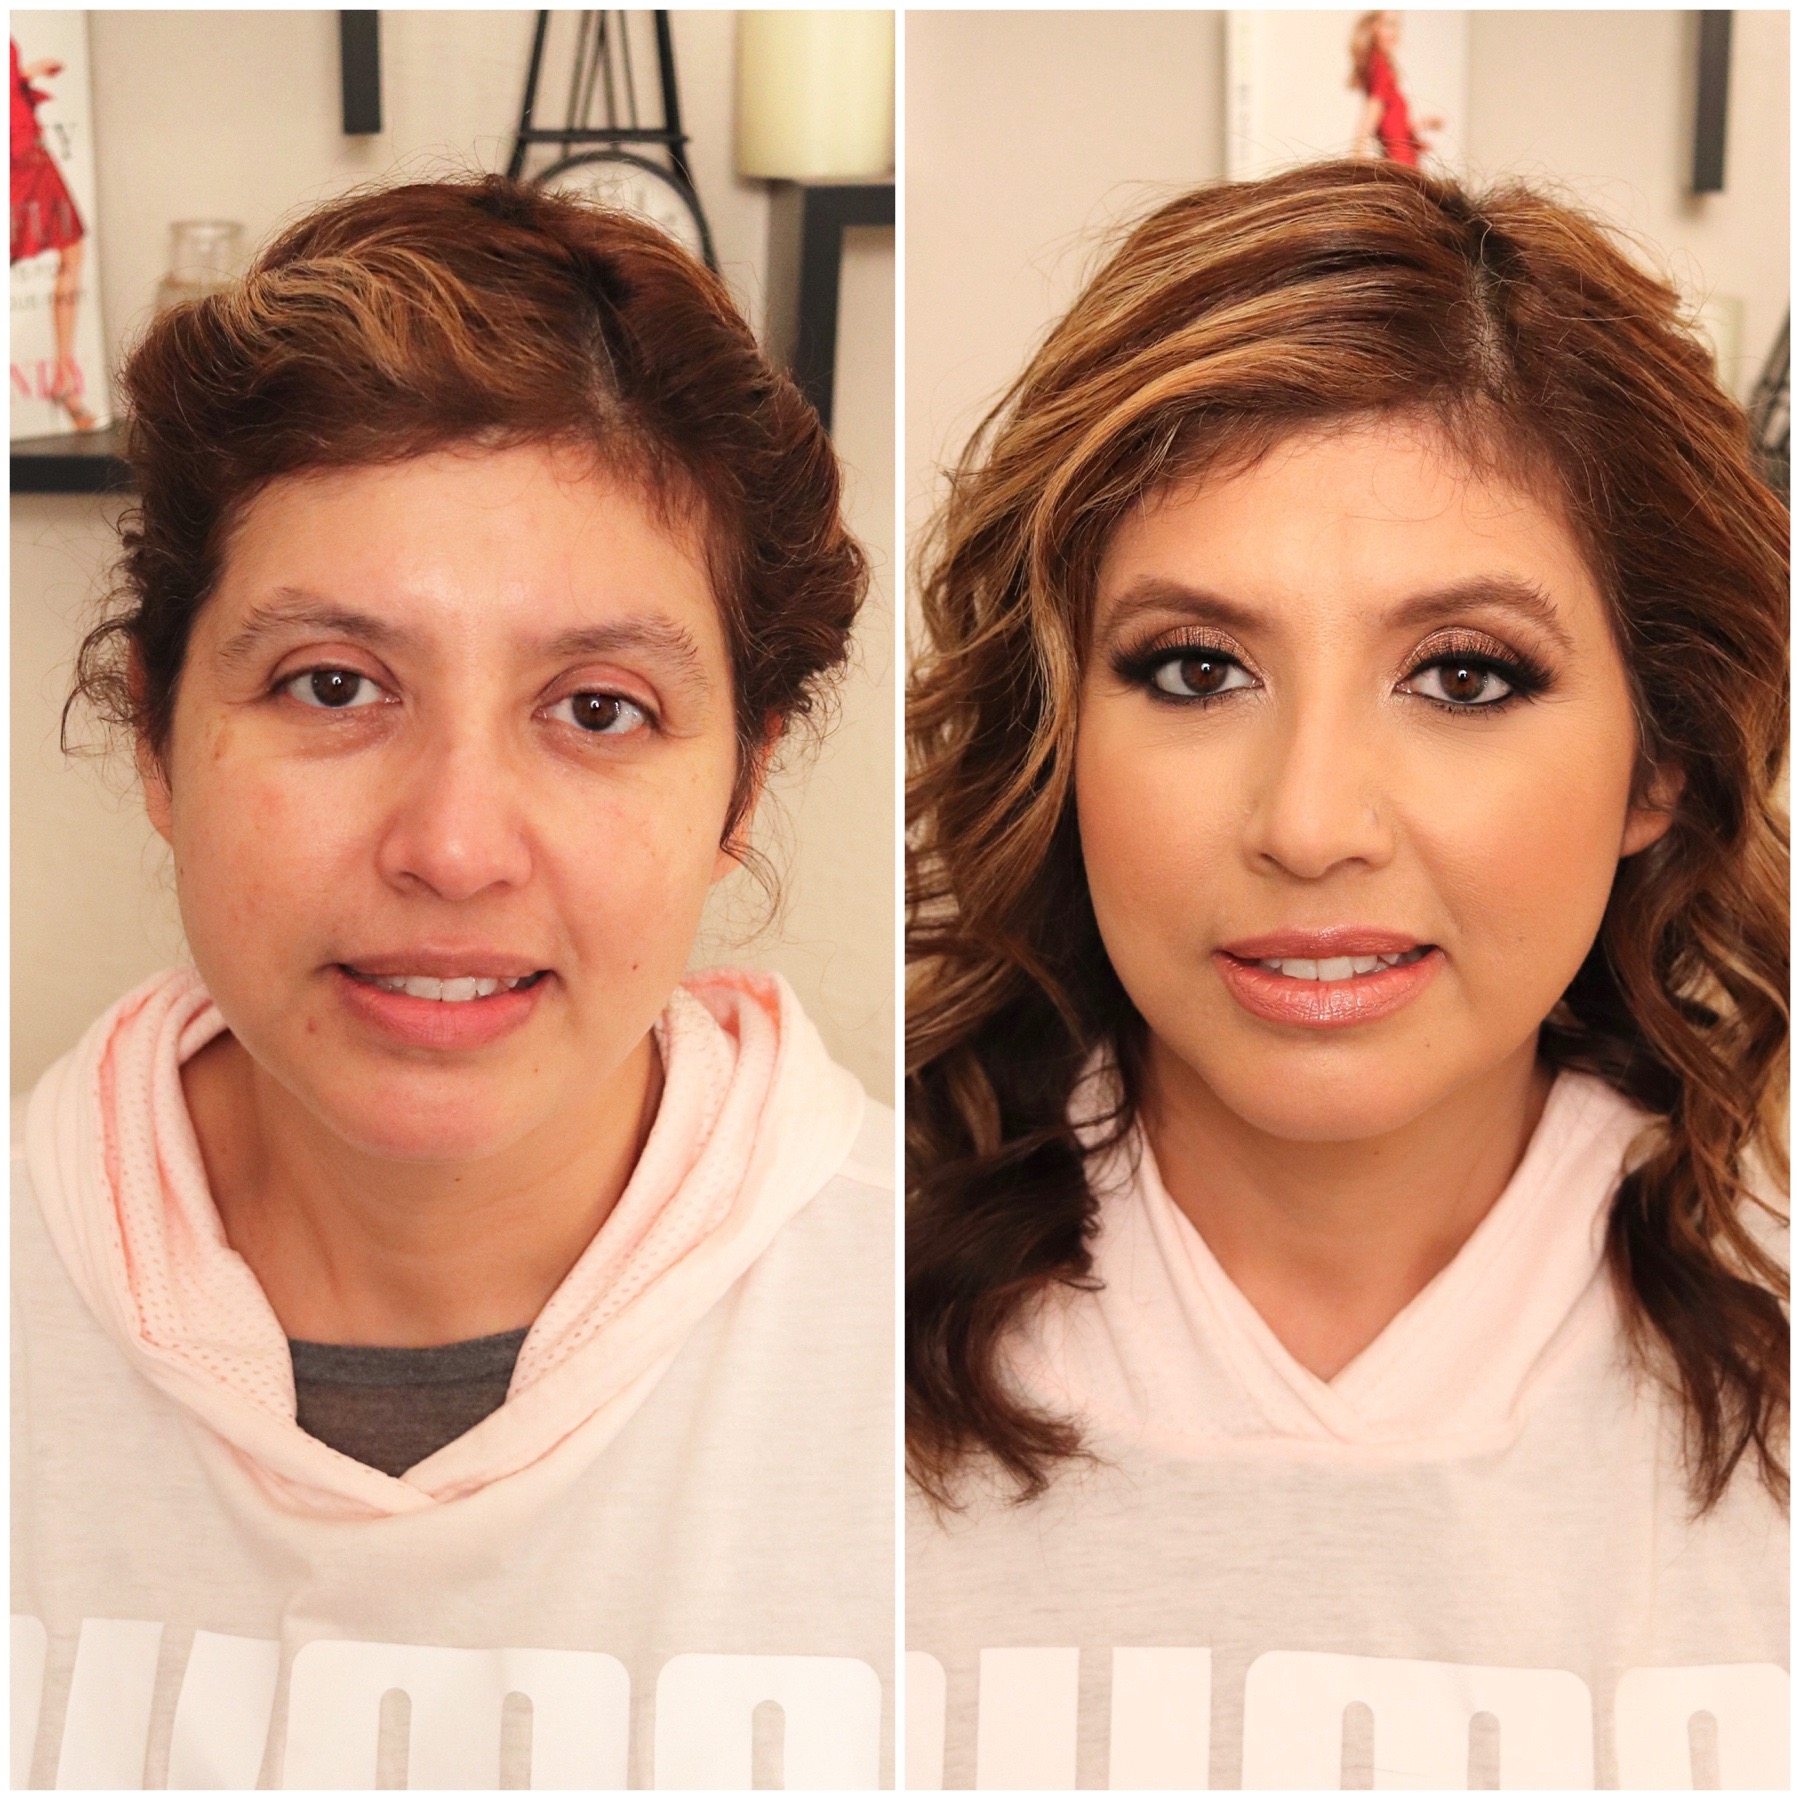 Melisa J Beauty Dallas Makeup Artist wed